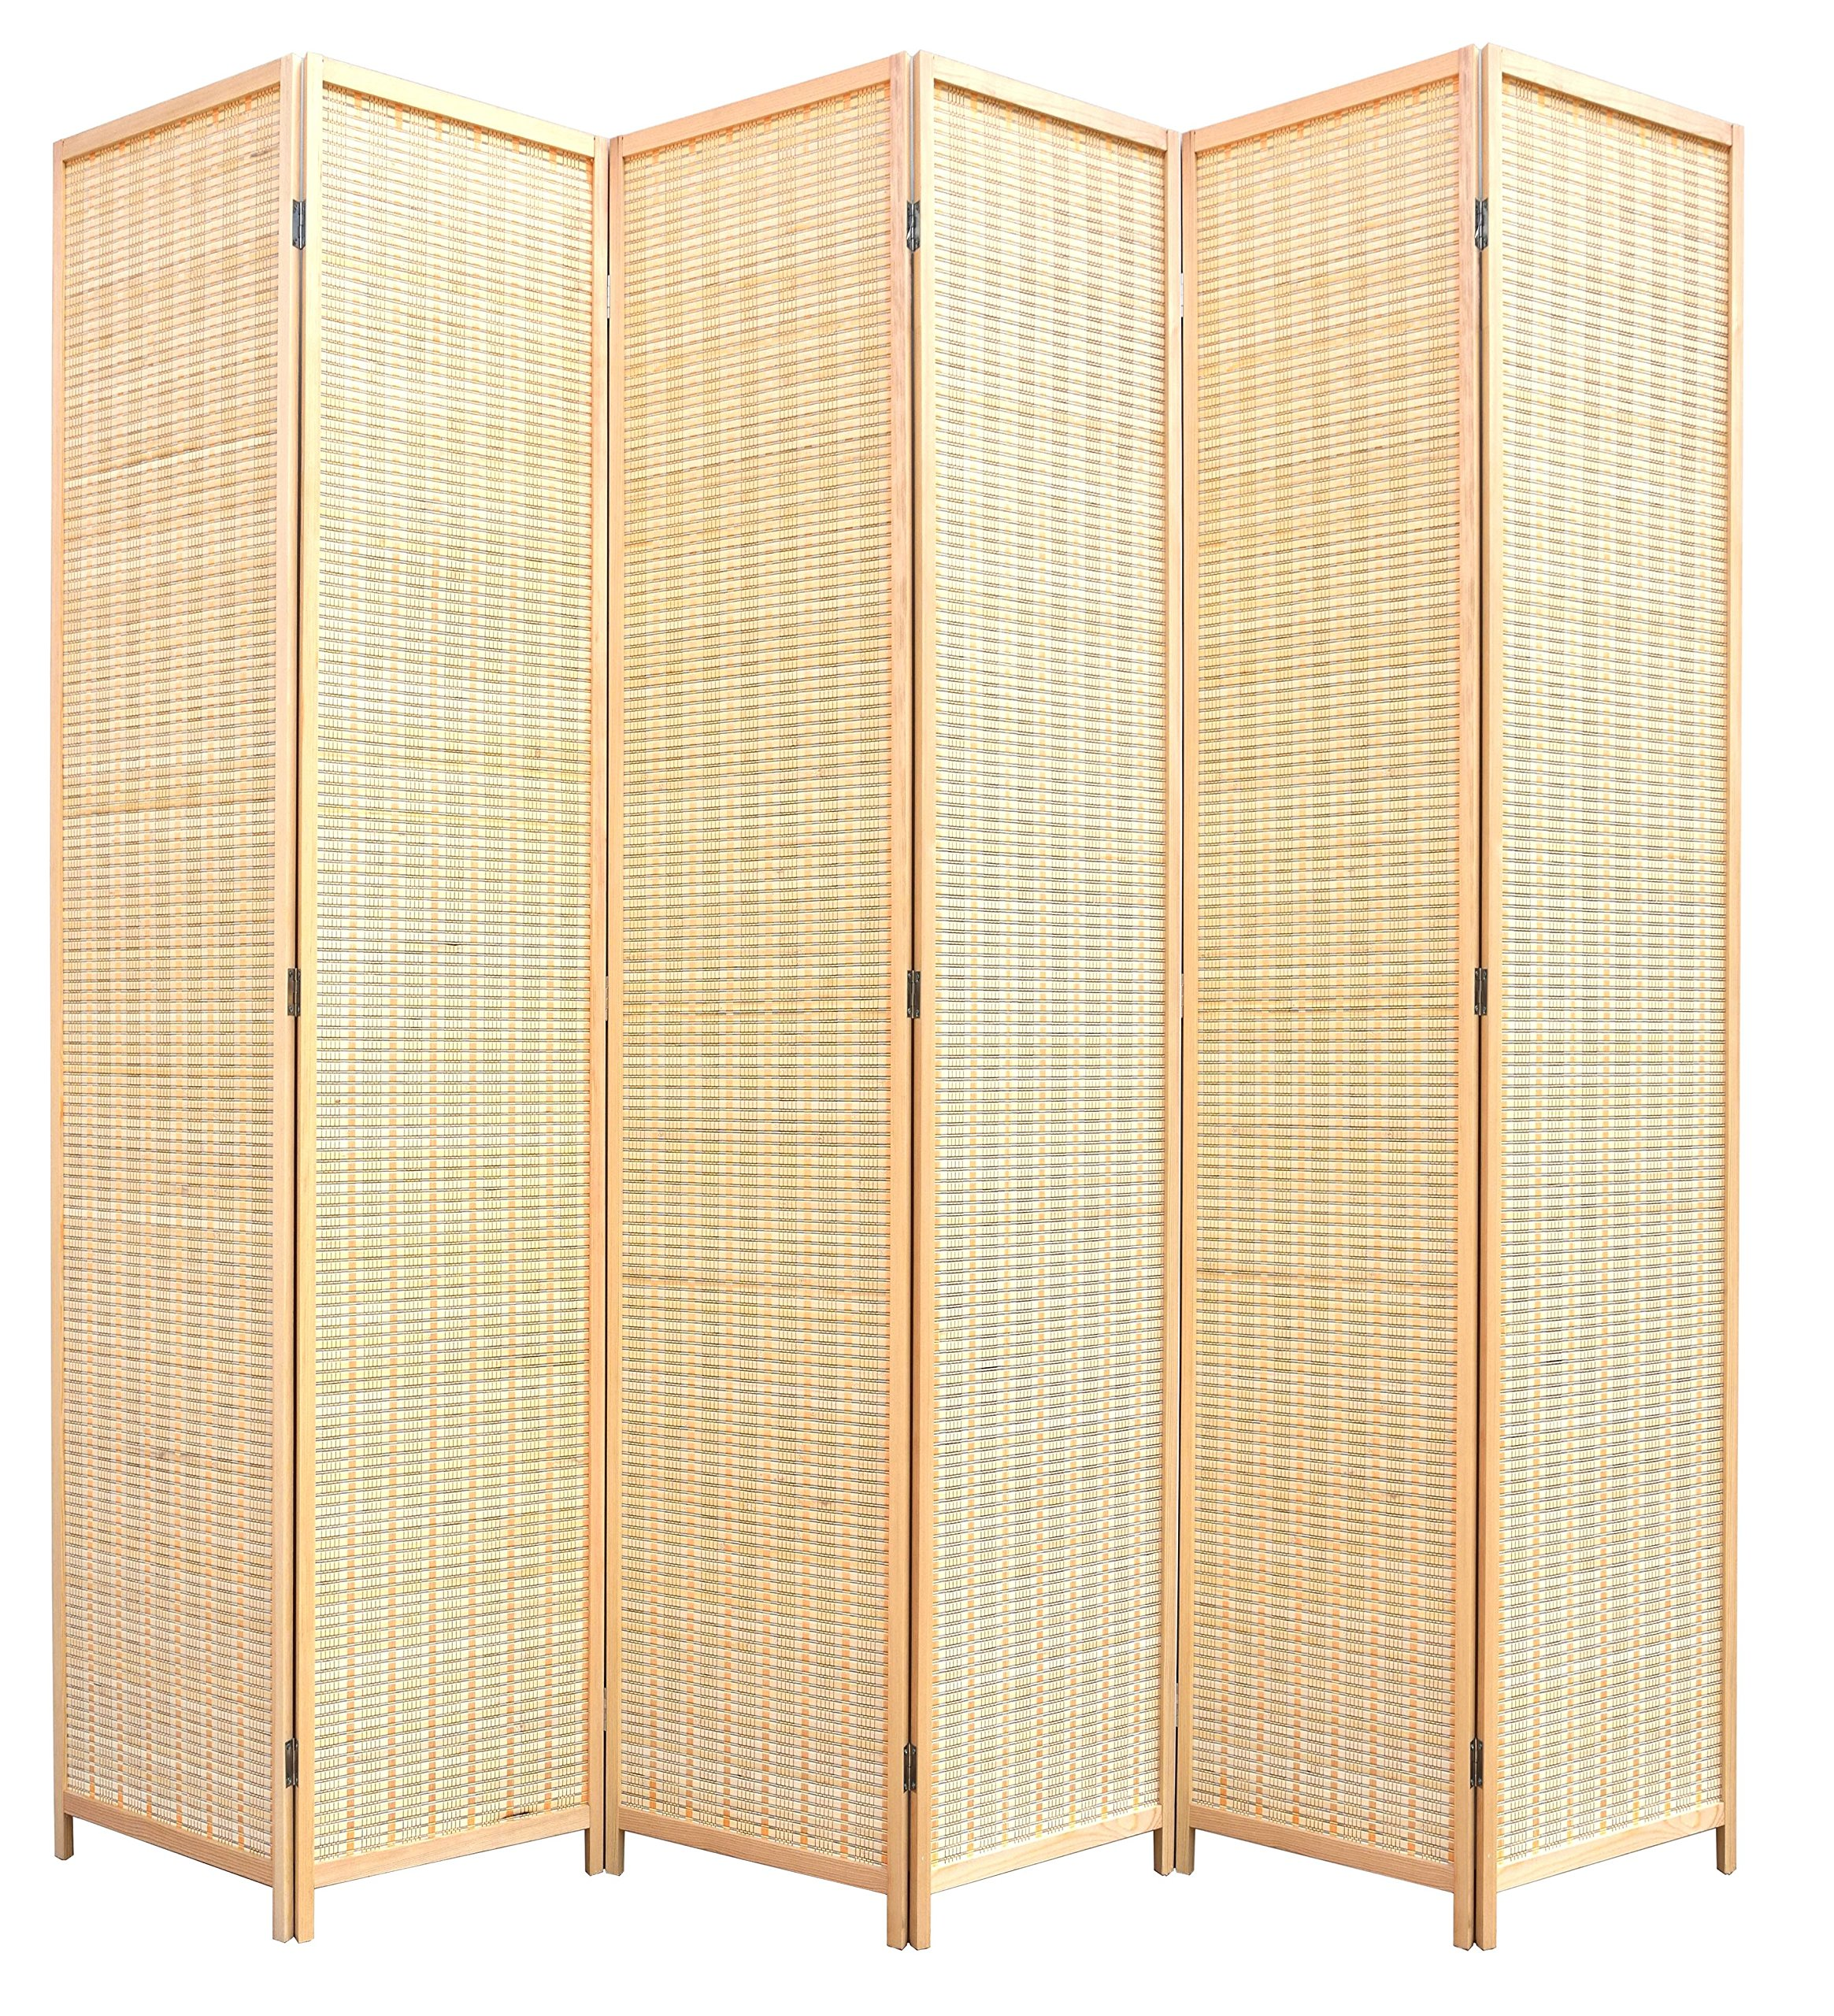 RHF 6 ft. Tal -Extra Wide-Beige Woven Bamboo&6 panel room divider/screen,room dividers and folding privacy screens 6 panel&Room dividers and folding privacy screens-Beige Bamboo 6 Panels